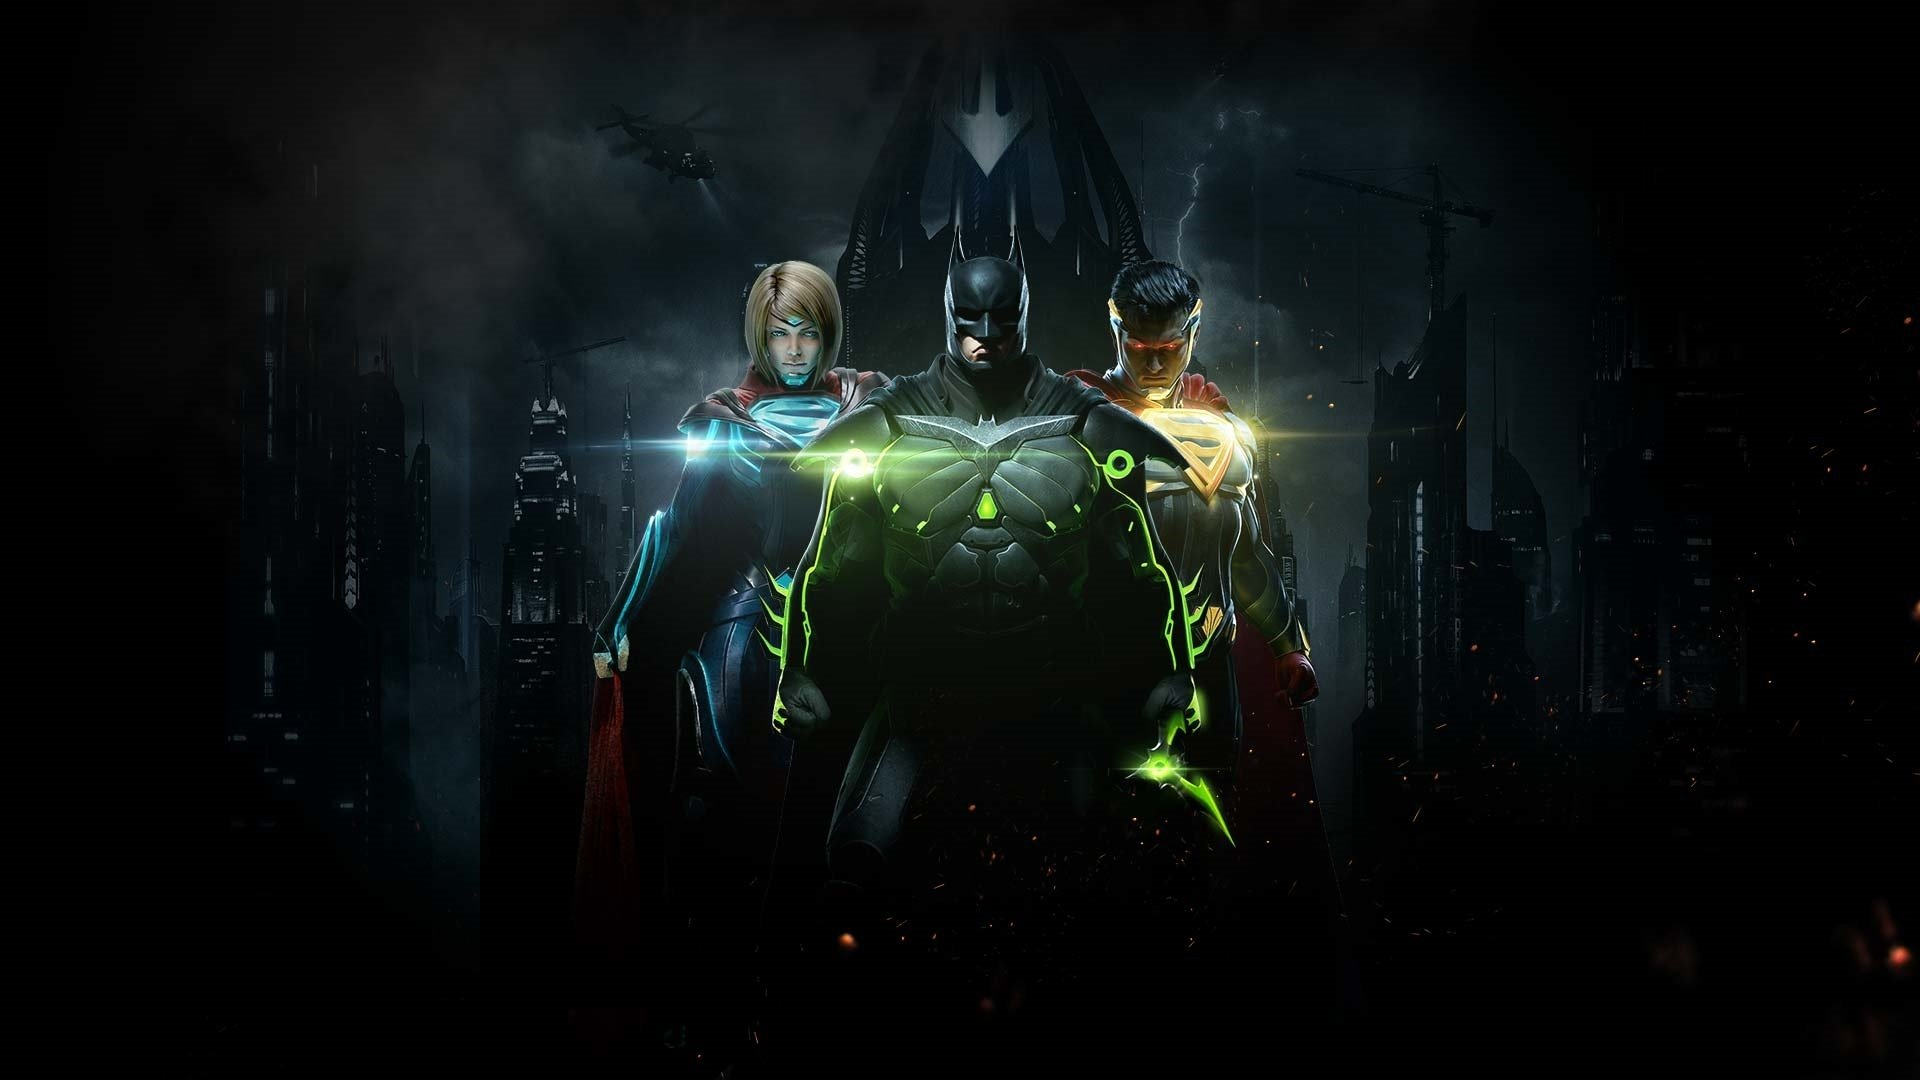 Injustice 2 cover art with Batman, Supergirl, and Superman, all wearing special armor.